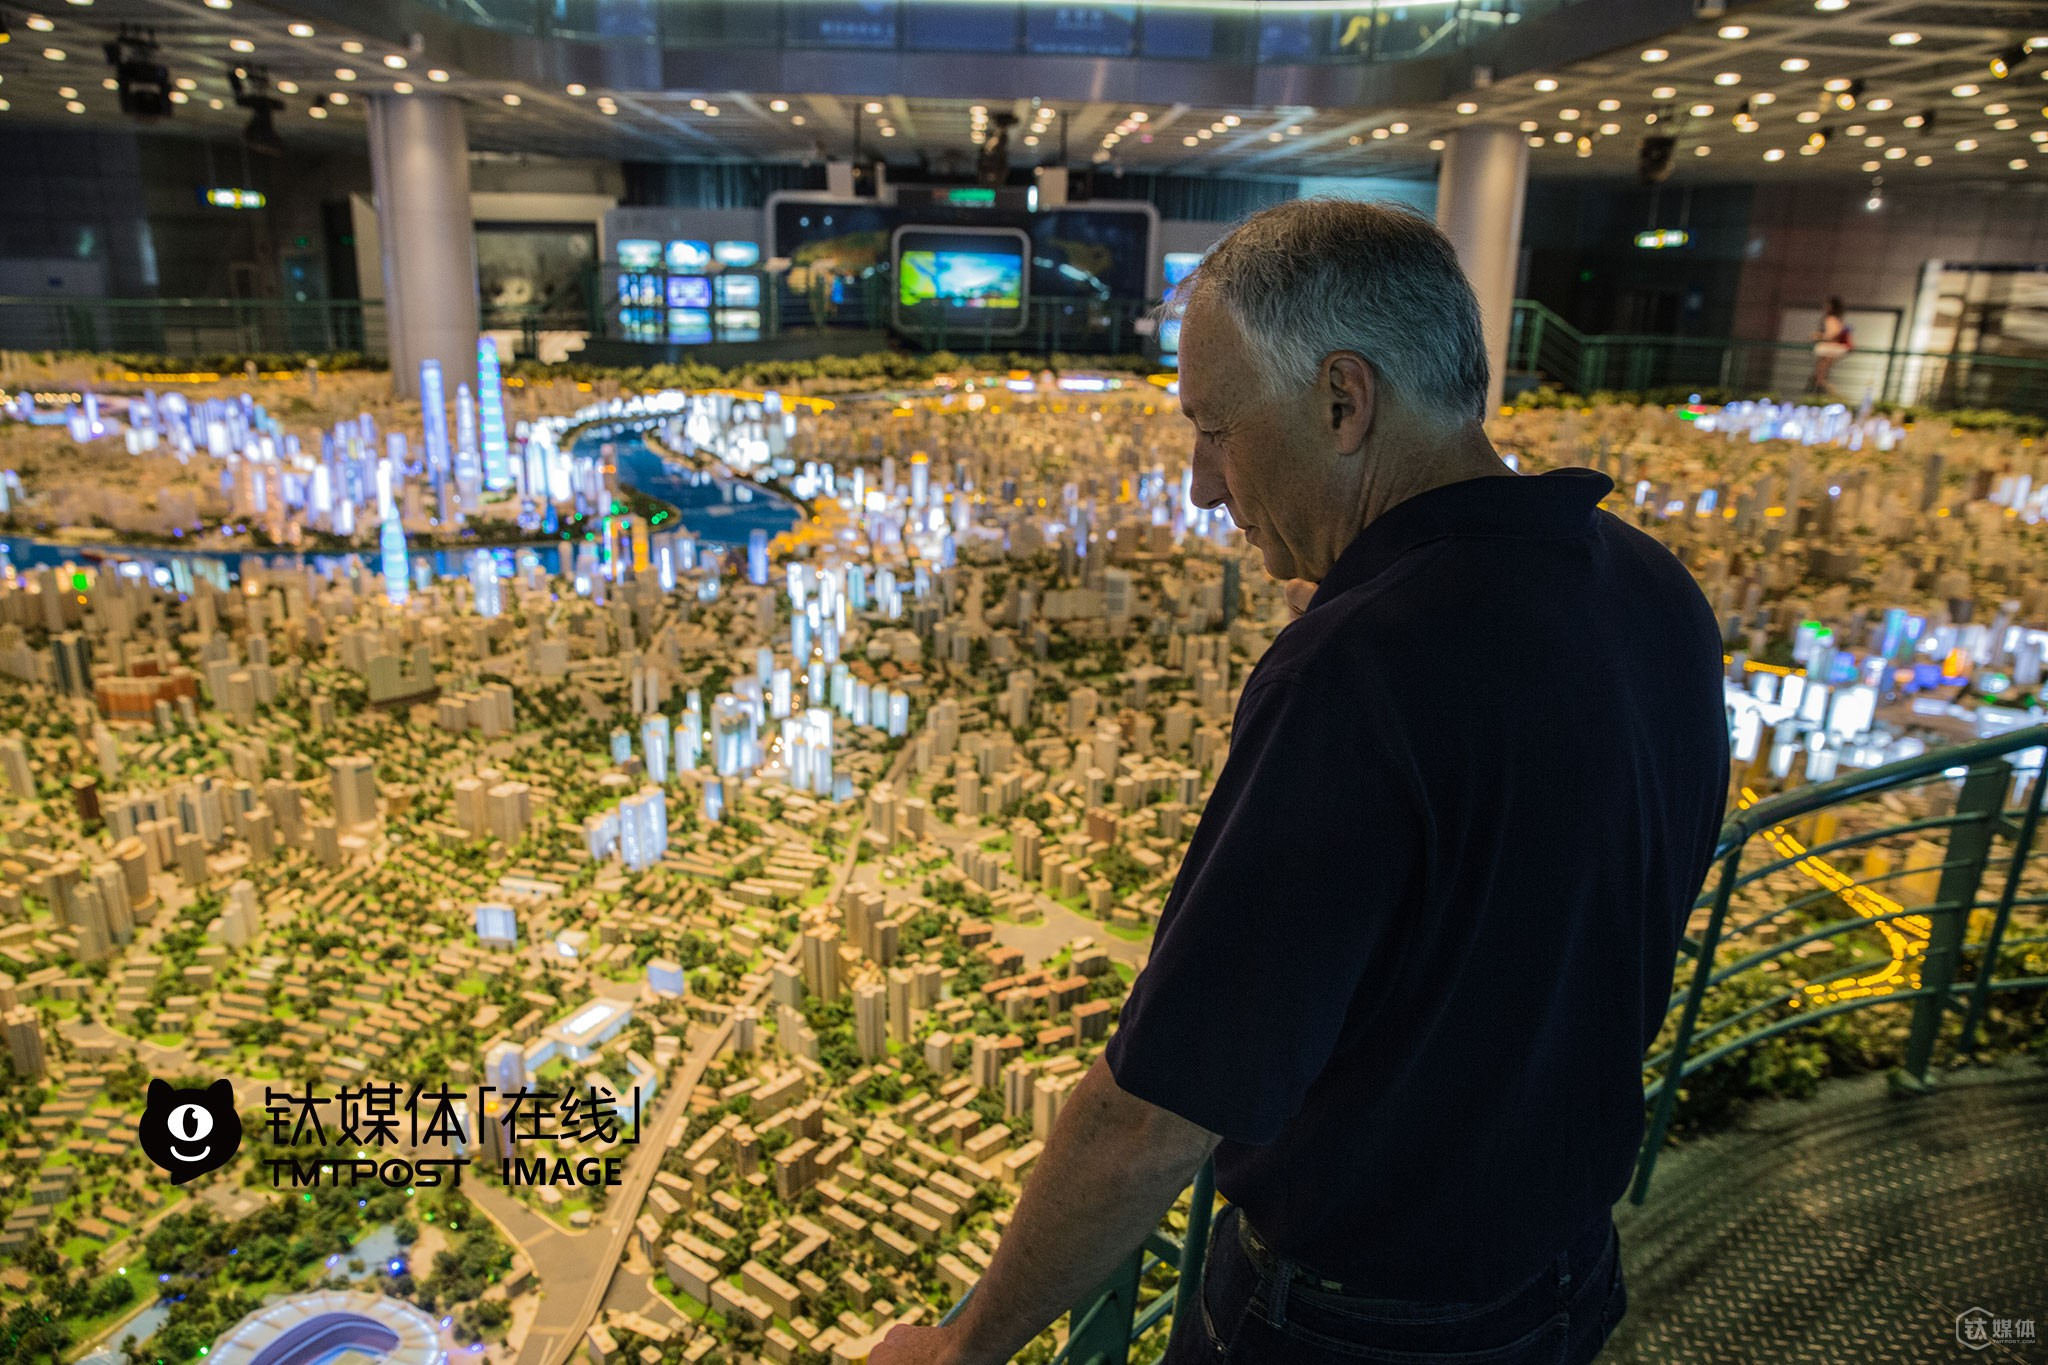 "Michael, vice mayor of Atherton, was shocked at the city model of Shanghai. ""This city model is so huge! We also have a city model for Michael Lempres, but it's much smaller than this one,"" he said, ""Atherton lies right in the center of Silicon Valley, and the house price here is the highest in the US."" There are no tech company but lots of residential houses in Atherton. As a matter of fact, Atherton is the most favorable place to live in for many CEOs of giant tech companies as well as investors in Silicon Valley."